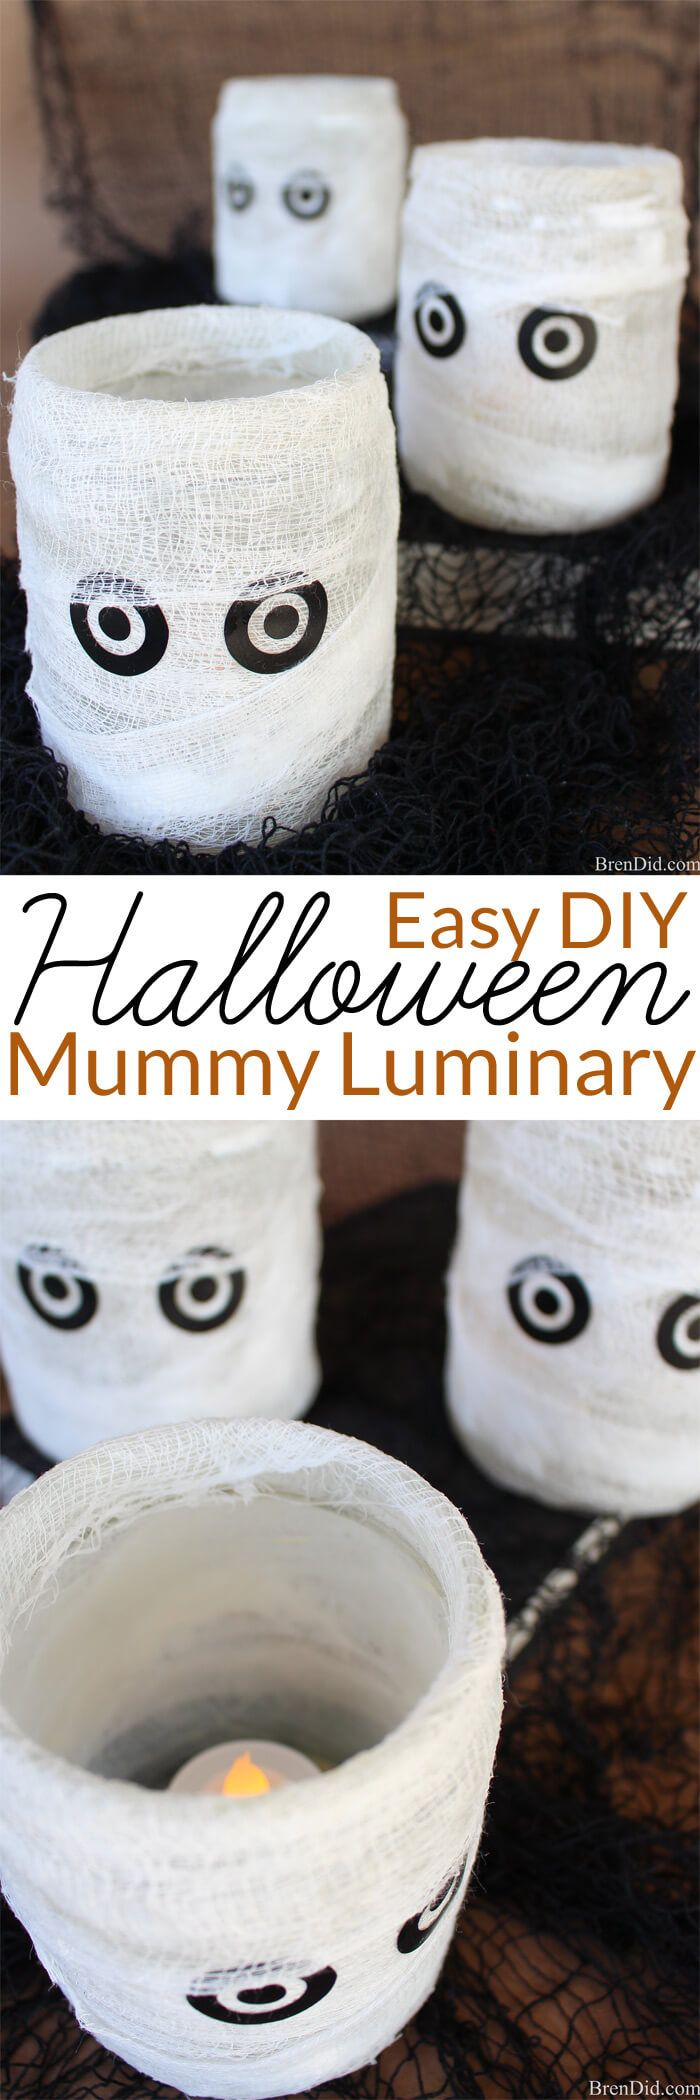 Mummy Luminary Easy Homemade Halloween Decoration - Learn how to make this easy homemade Halloween decoration that looks like a Pottery Barn candle holder.